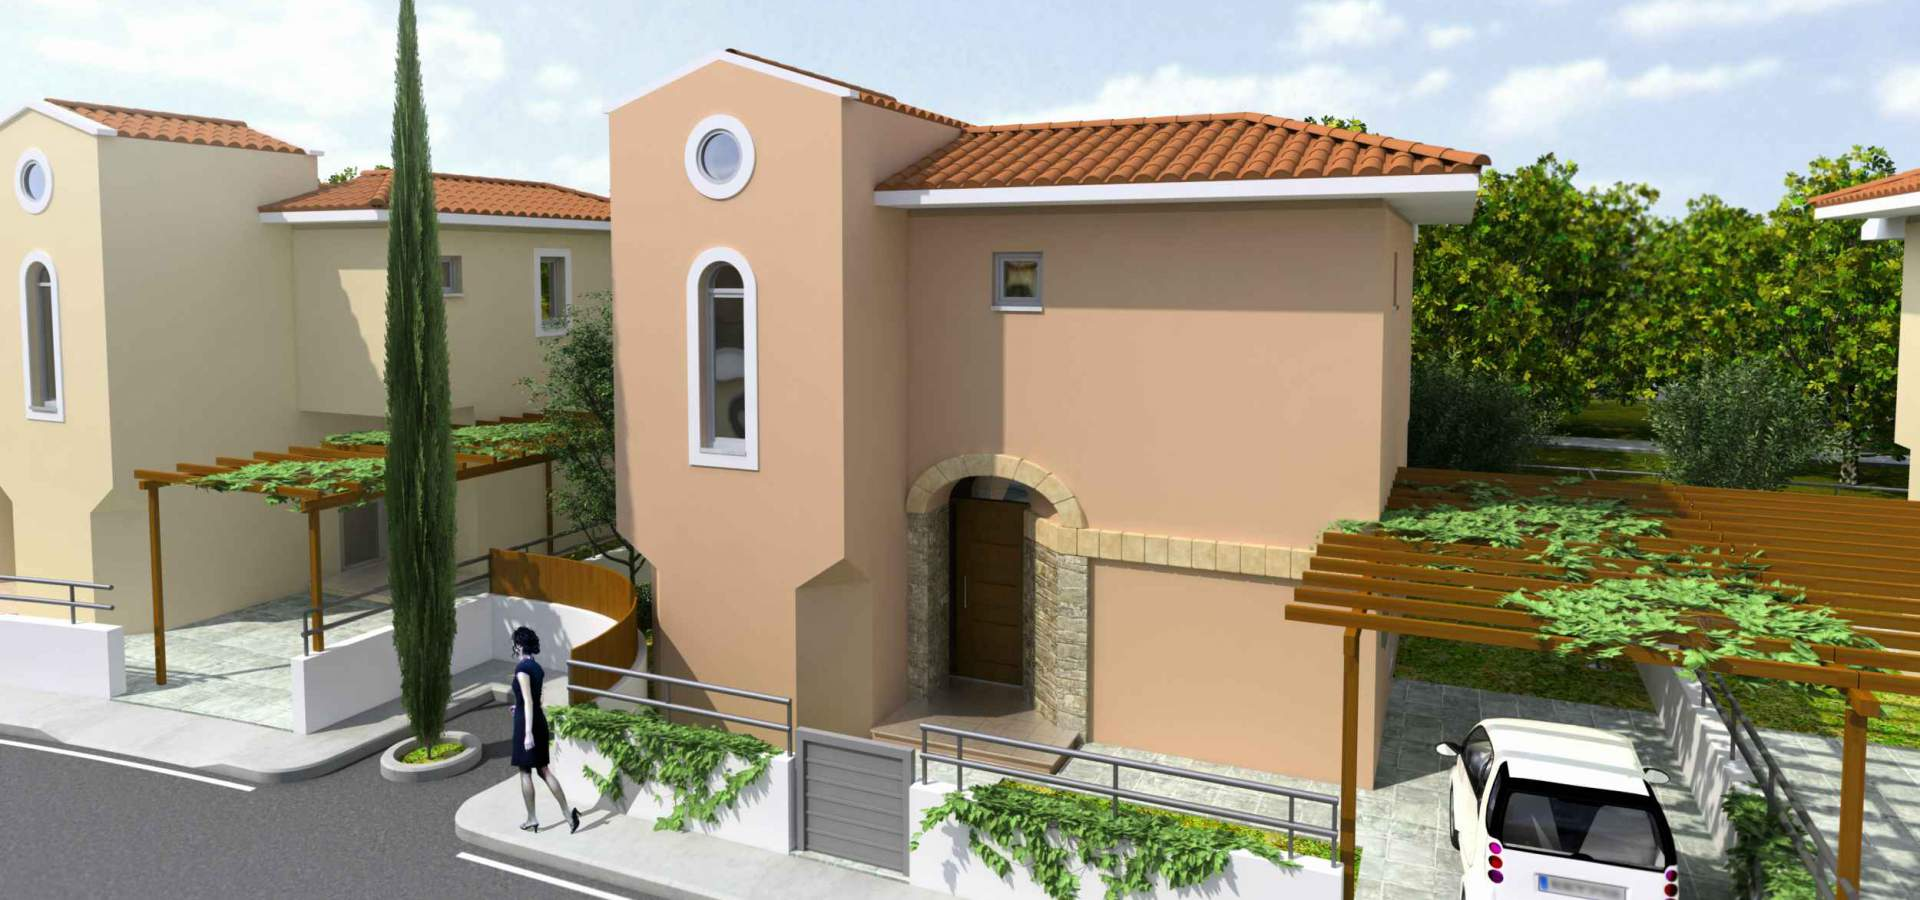 ASIMINA PARK, 2 bed townhouses, 2 and 3 bed villas in Kato